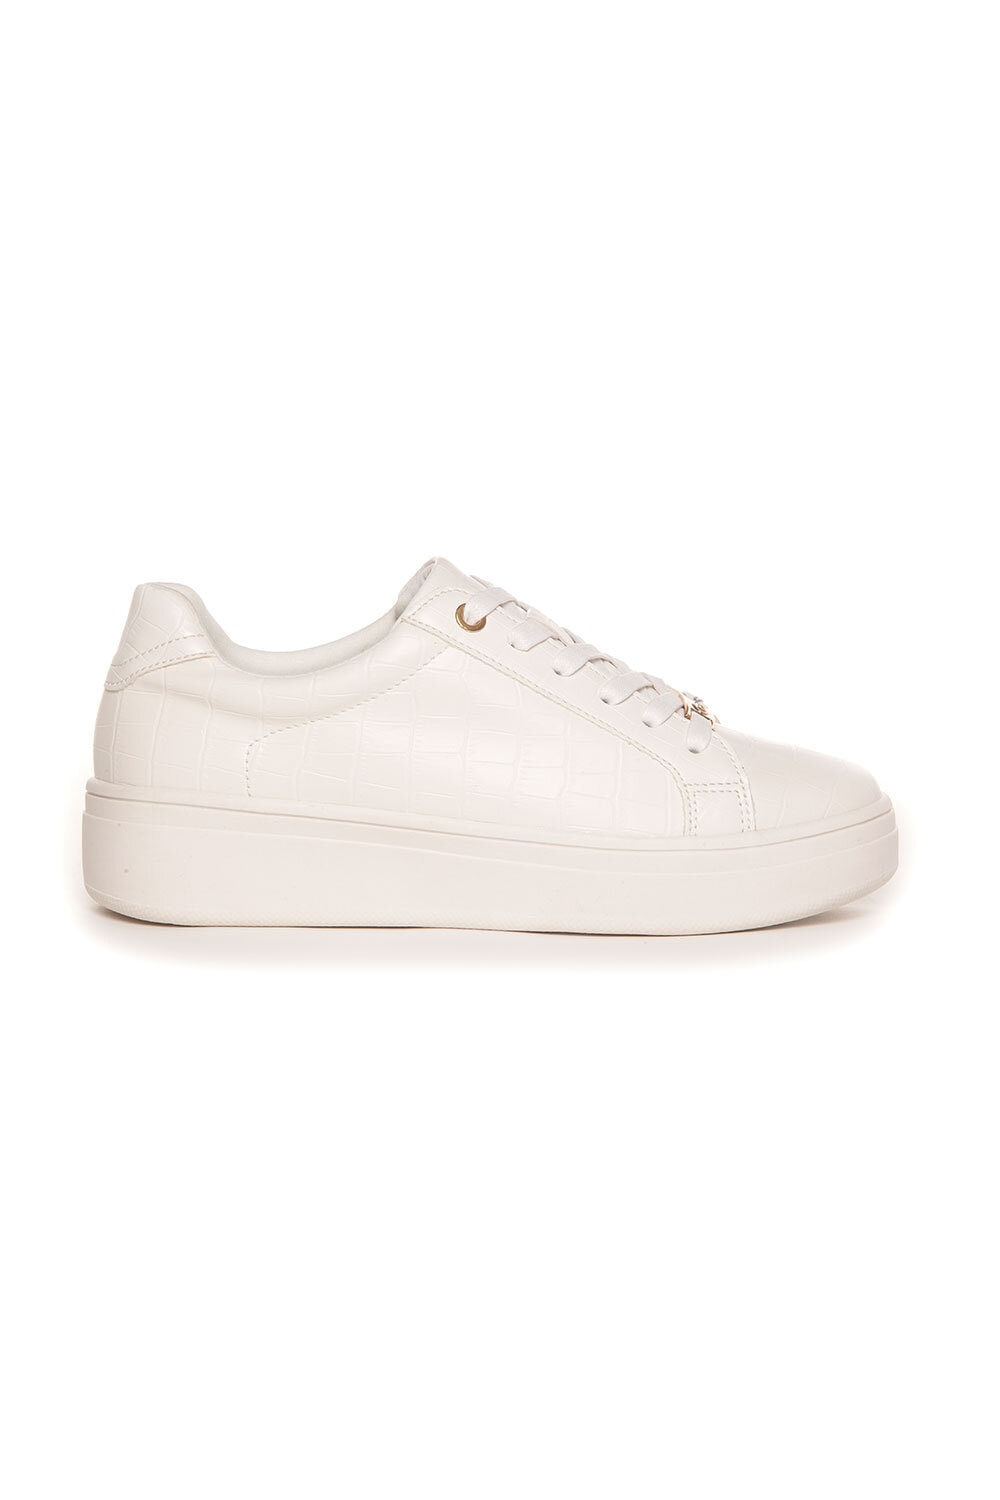 Sneakers Gold detail - White